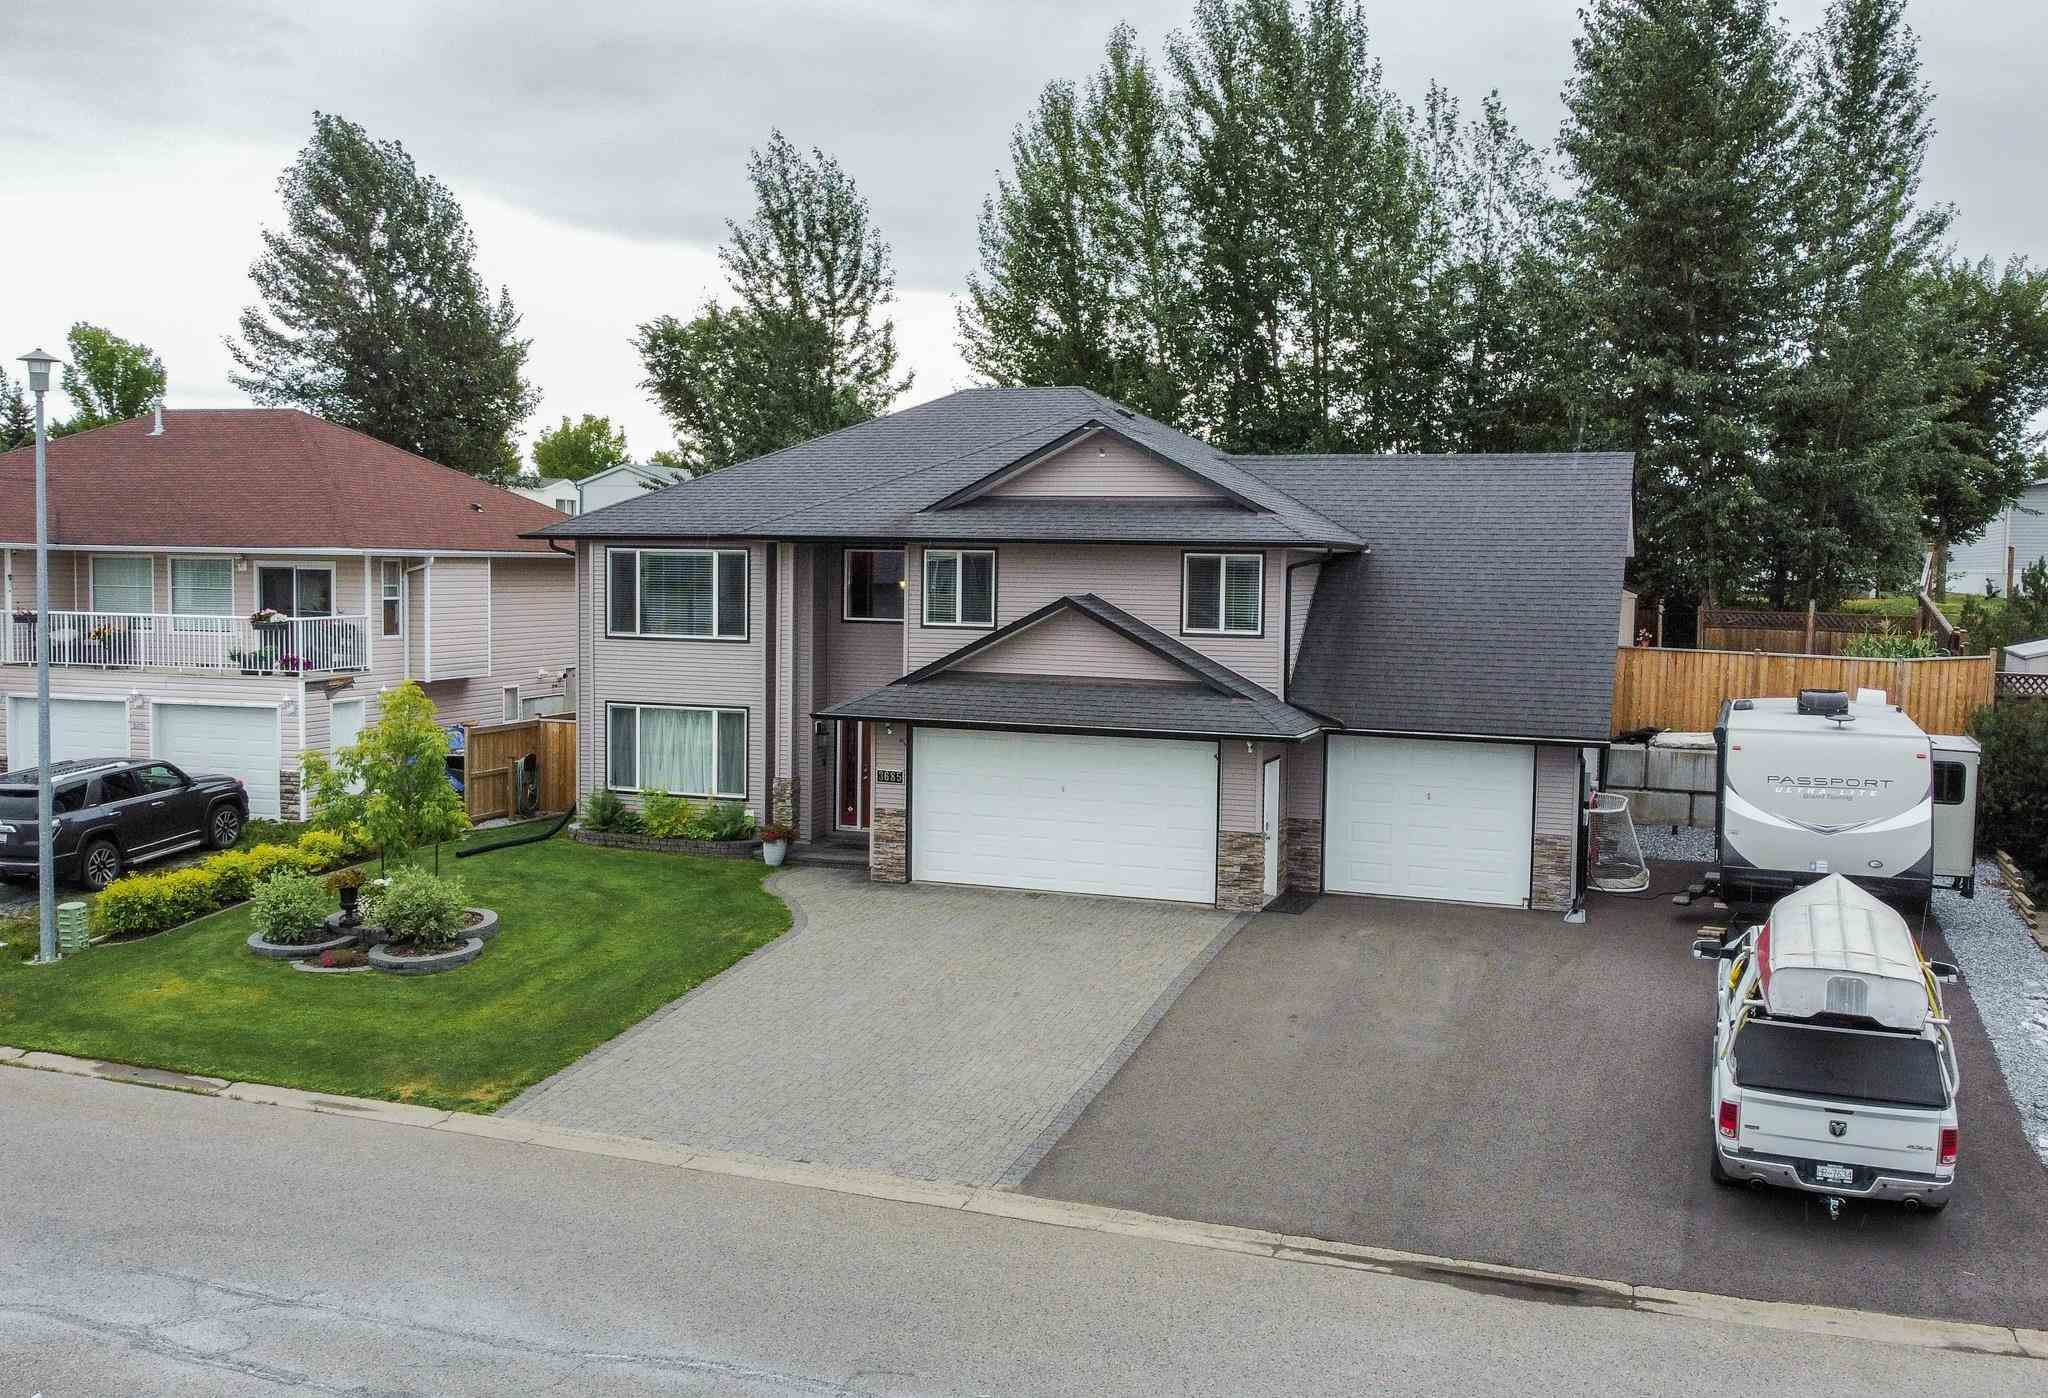 Main Photo: 3685 CHARTWELL Avenue in Prince George: Lafreniere House for sale (PG City South (Zone 74))  : MLS®# R2604337